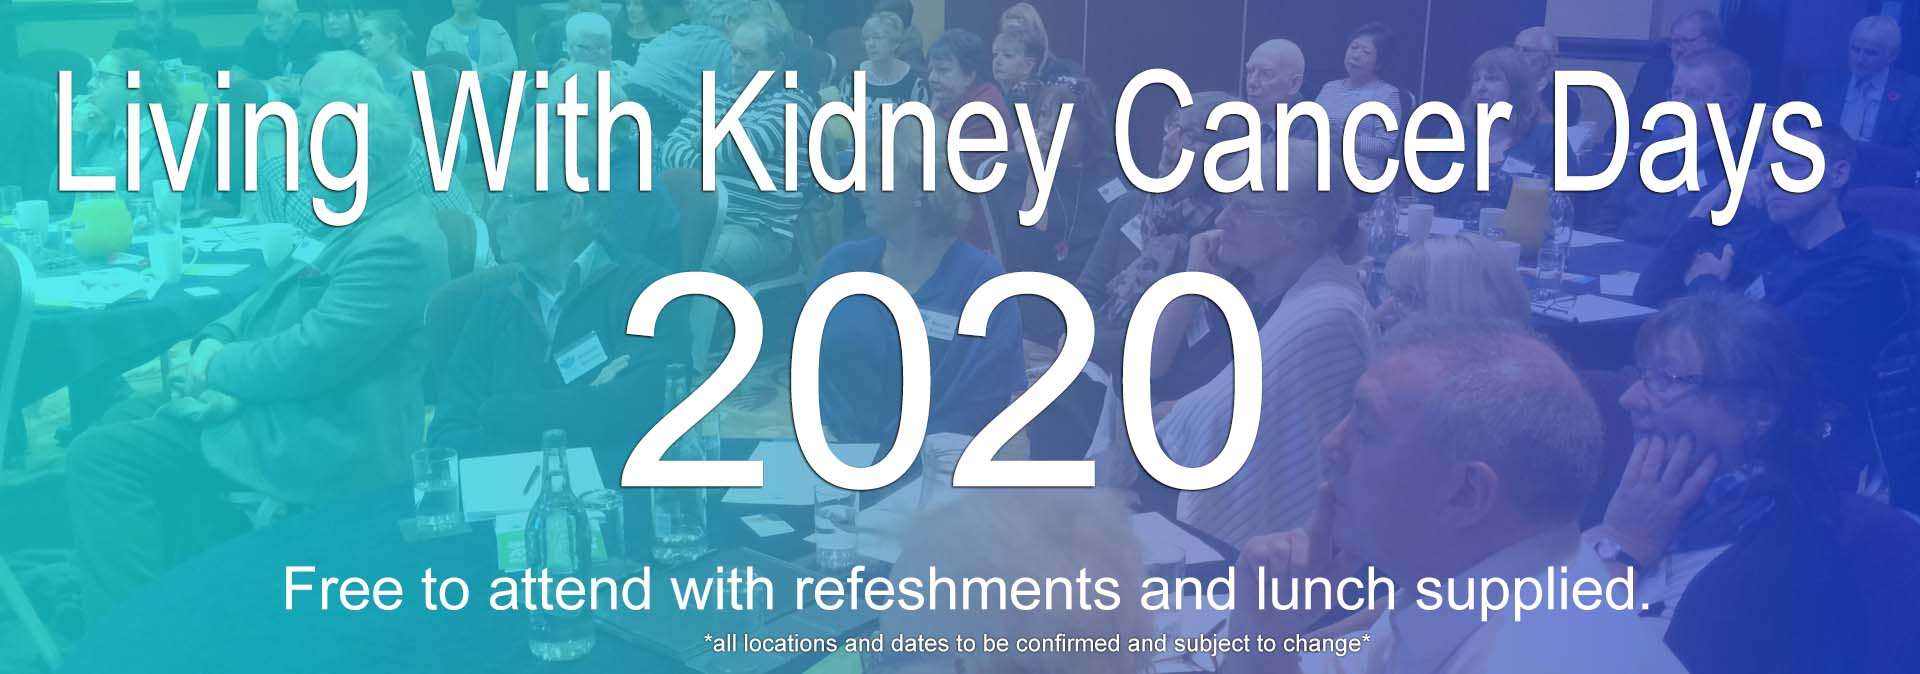 living with kidney cancer days 2020